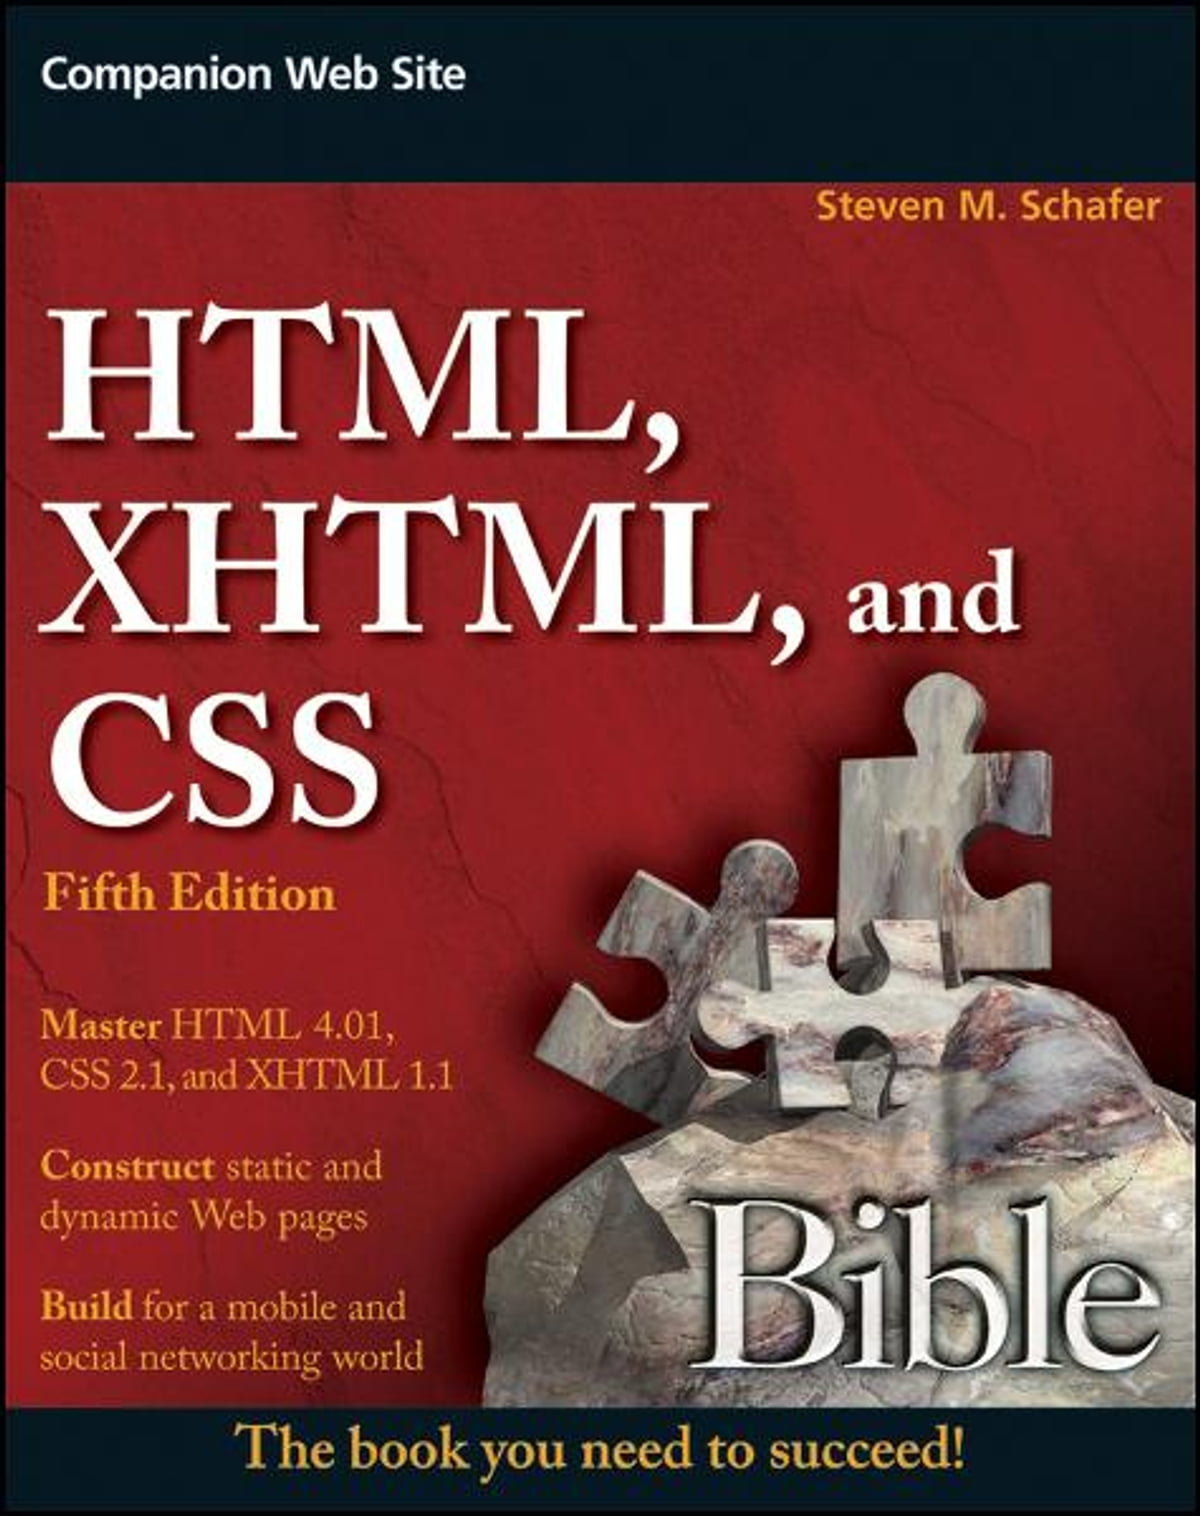 Html xhtml and css bible ebook by steven m schafer 9781118081303 rakuten kobo